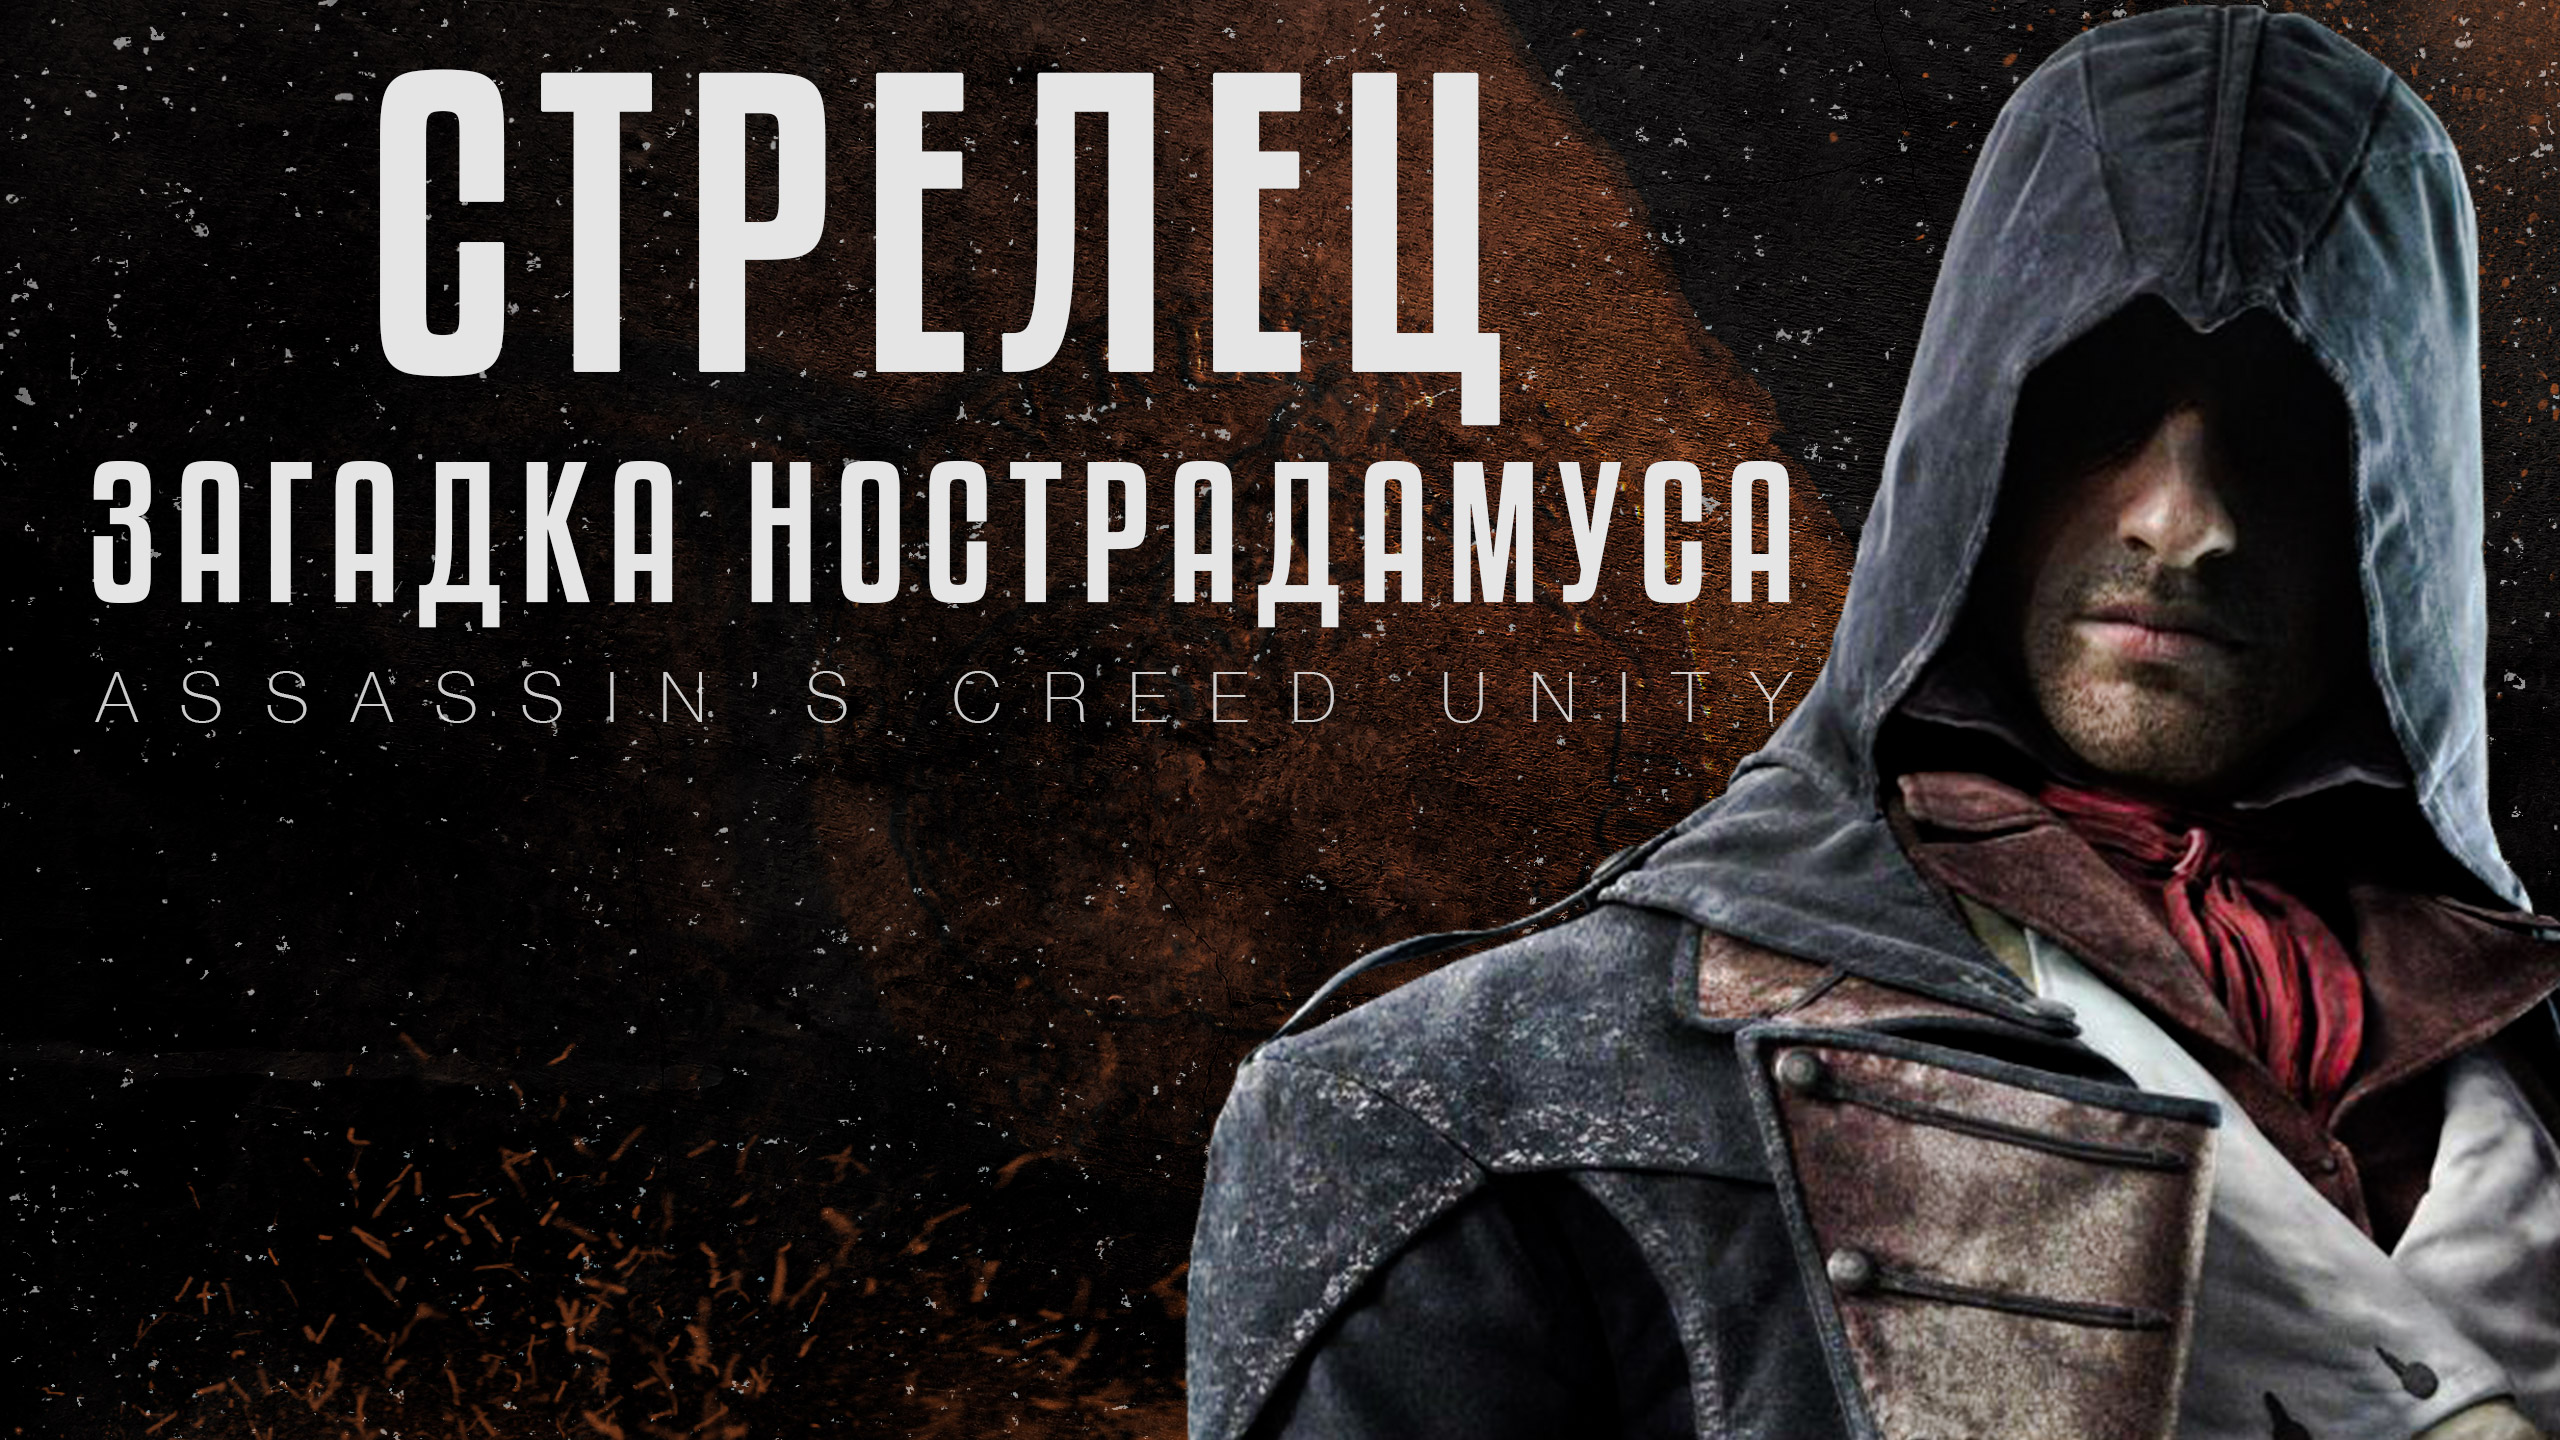 Нострадамус в игре Assassin's Creed Unity (Стрелец)